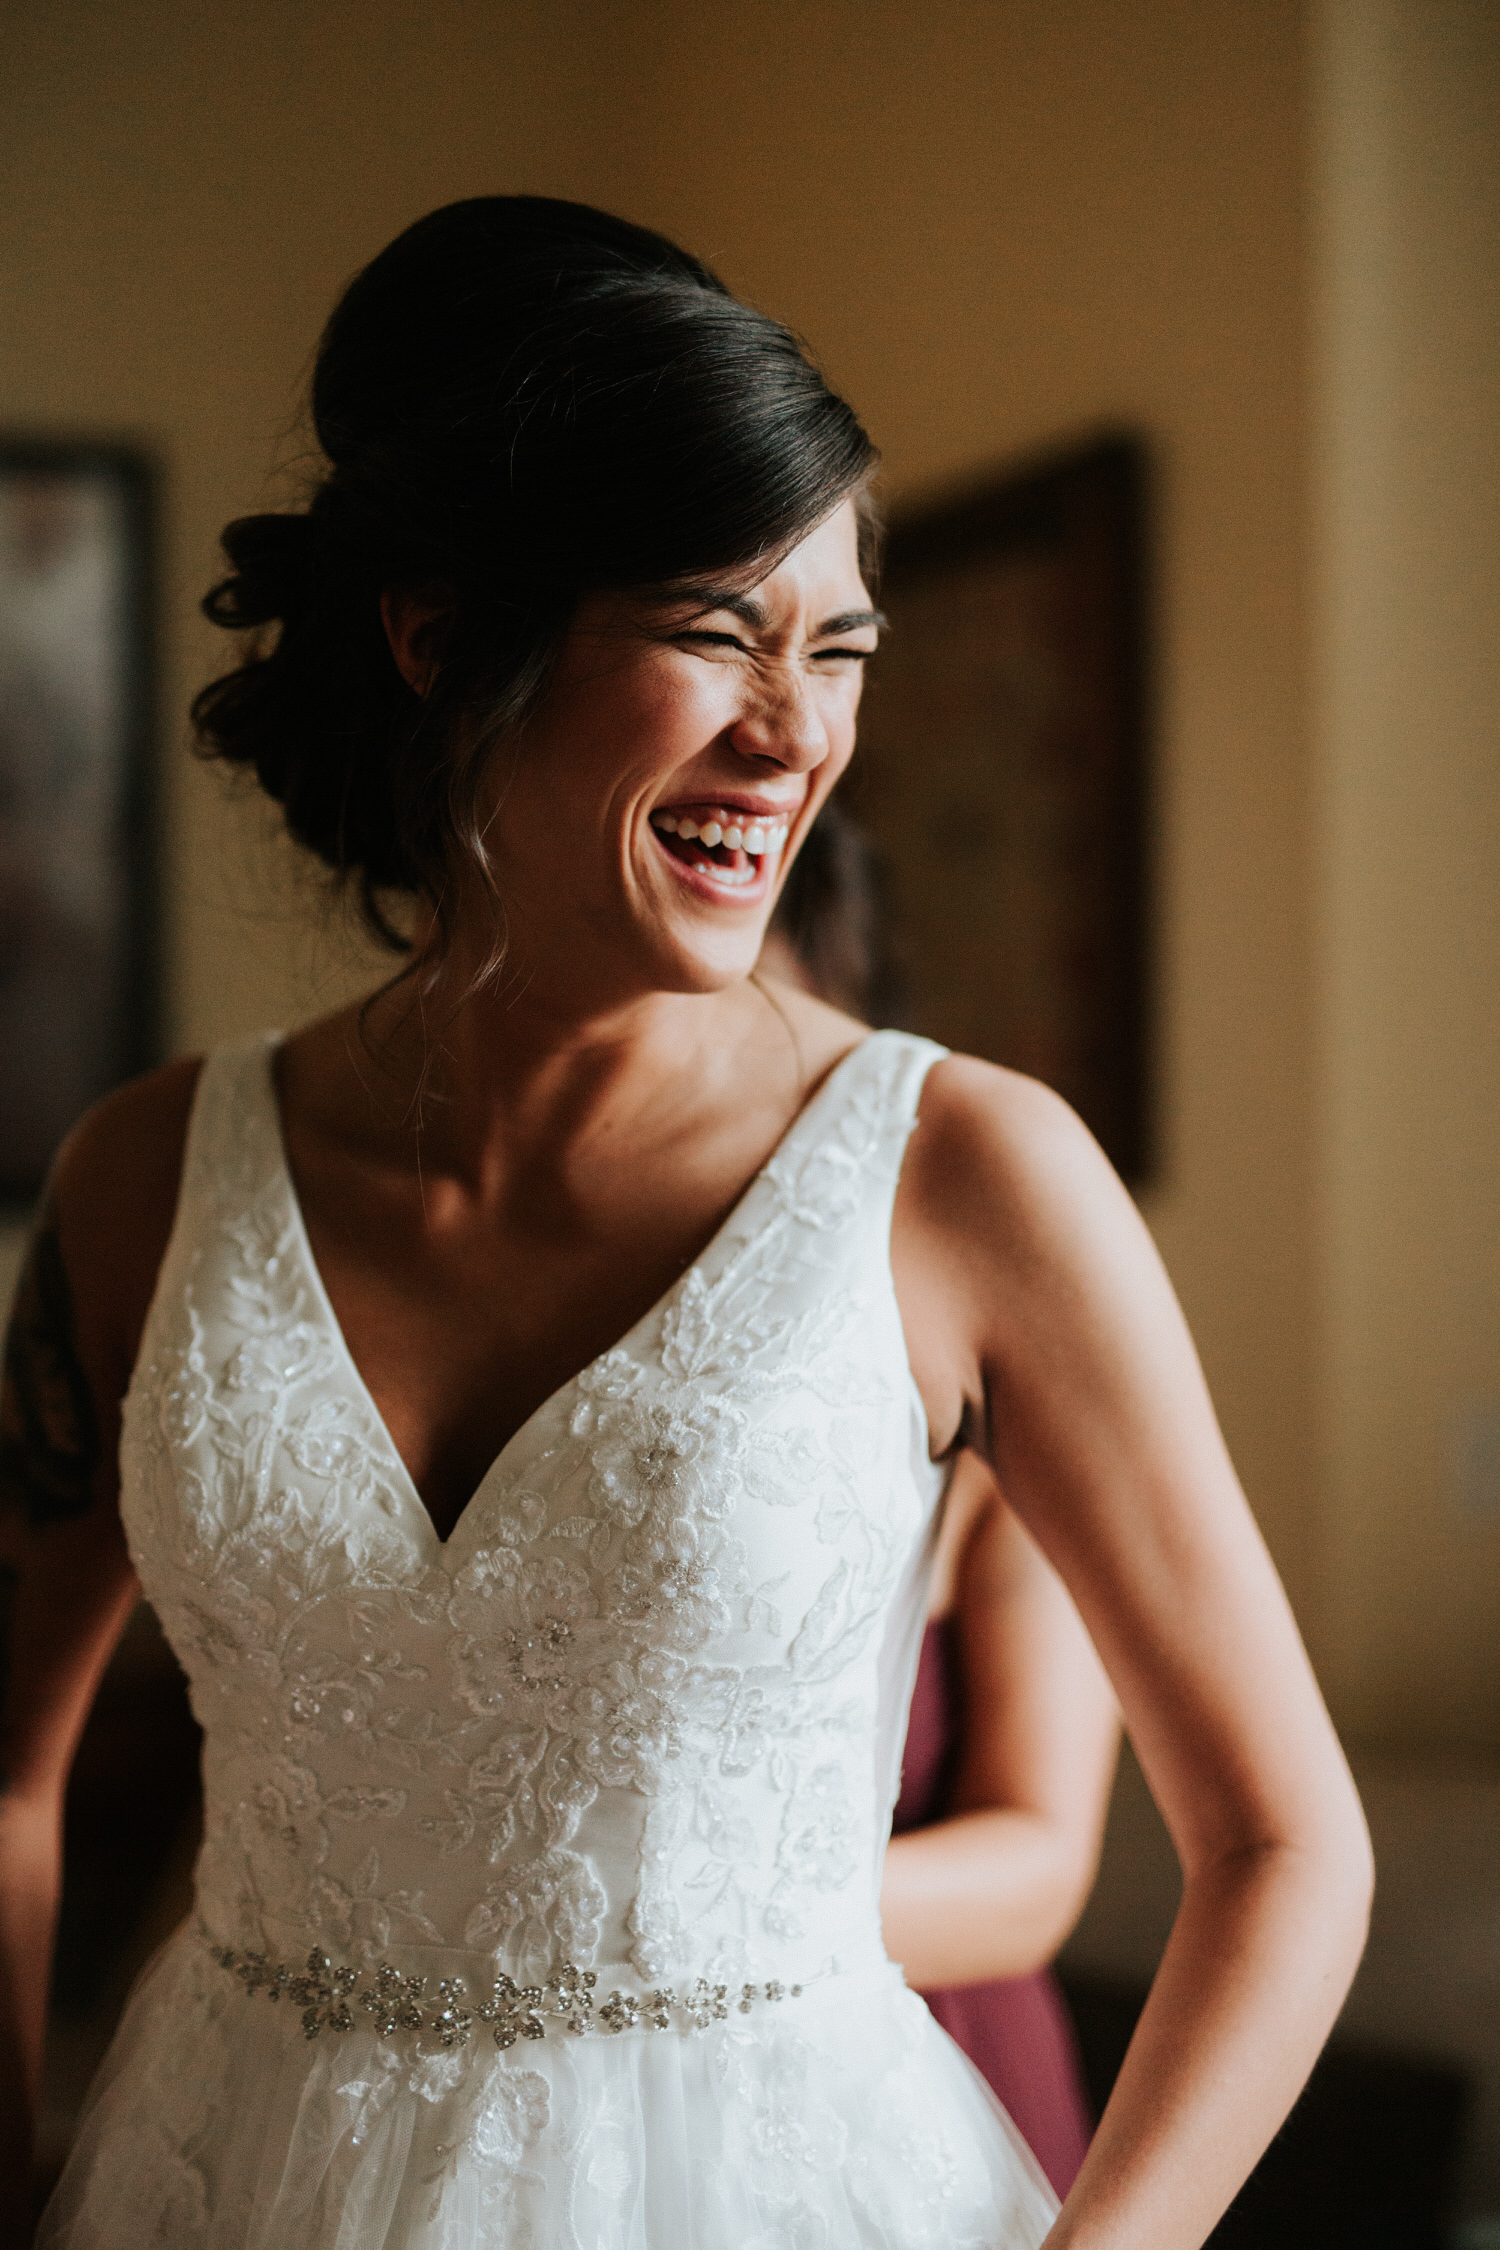 Bride getting ready for the wedding at The Sanctuary Austin